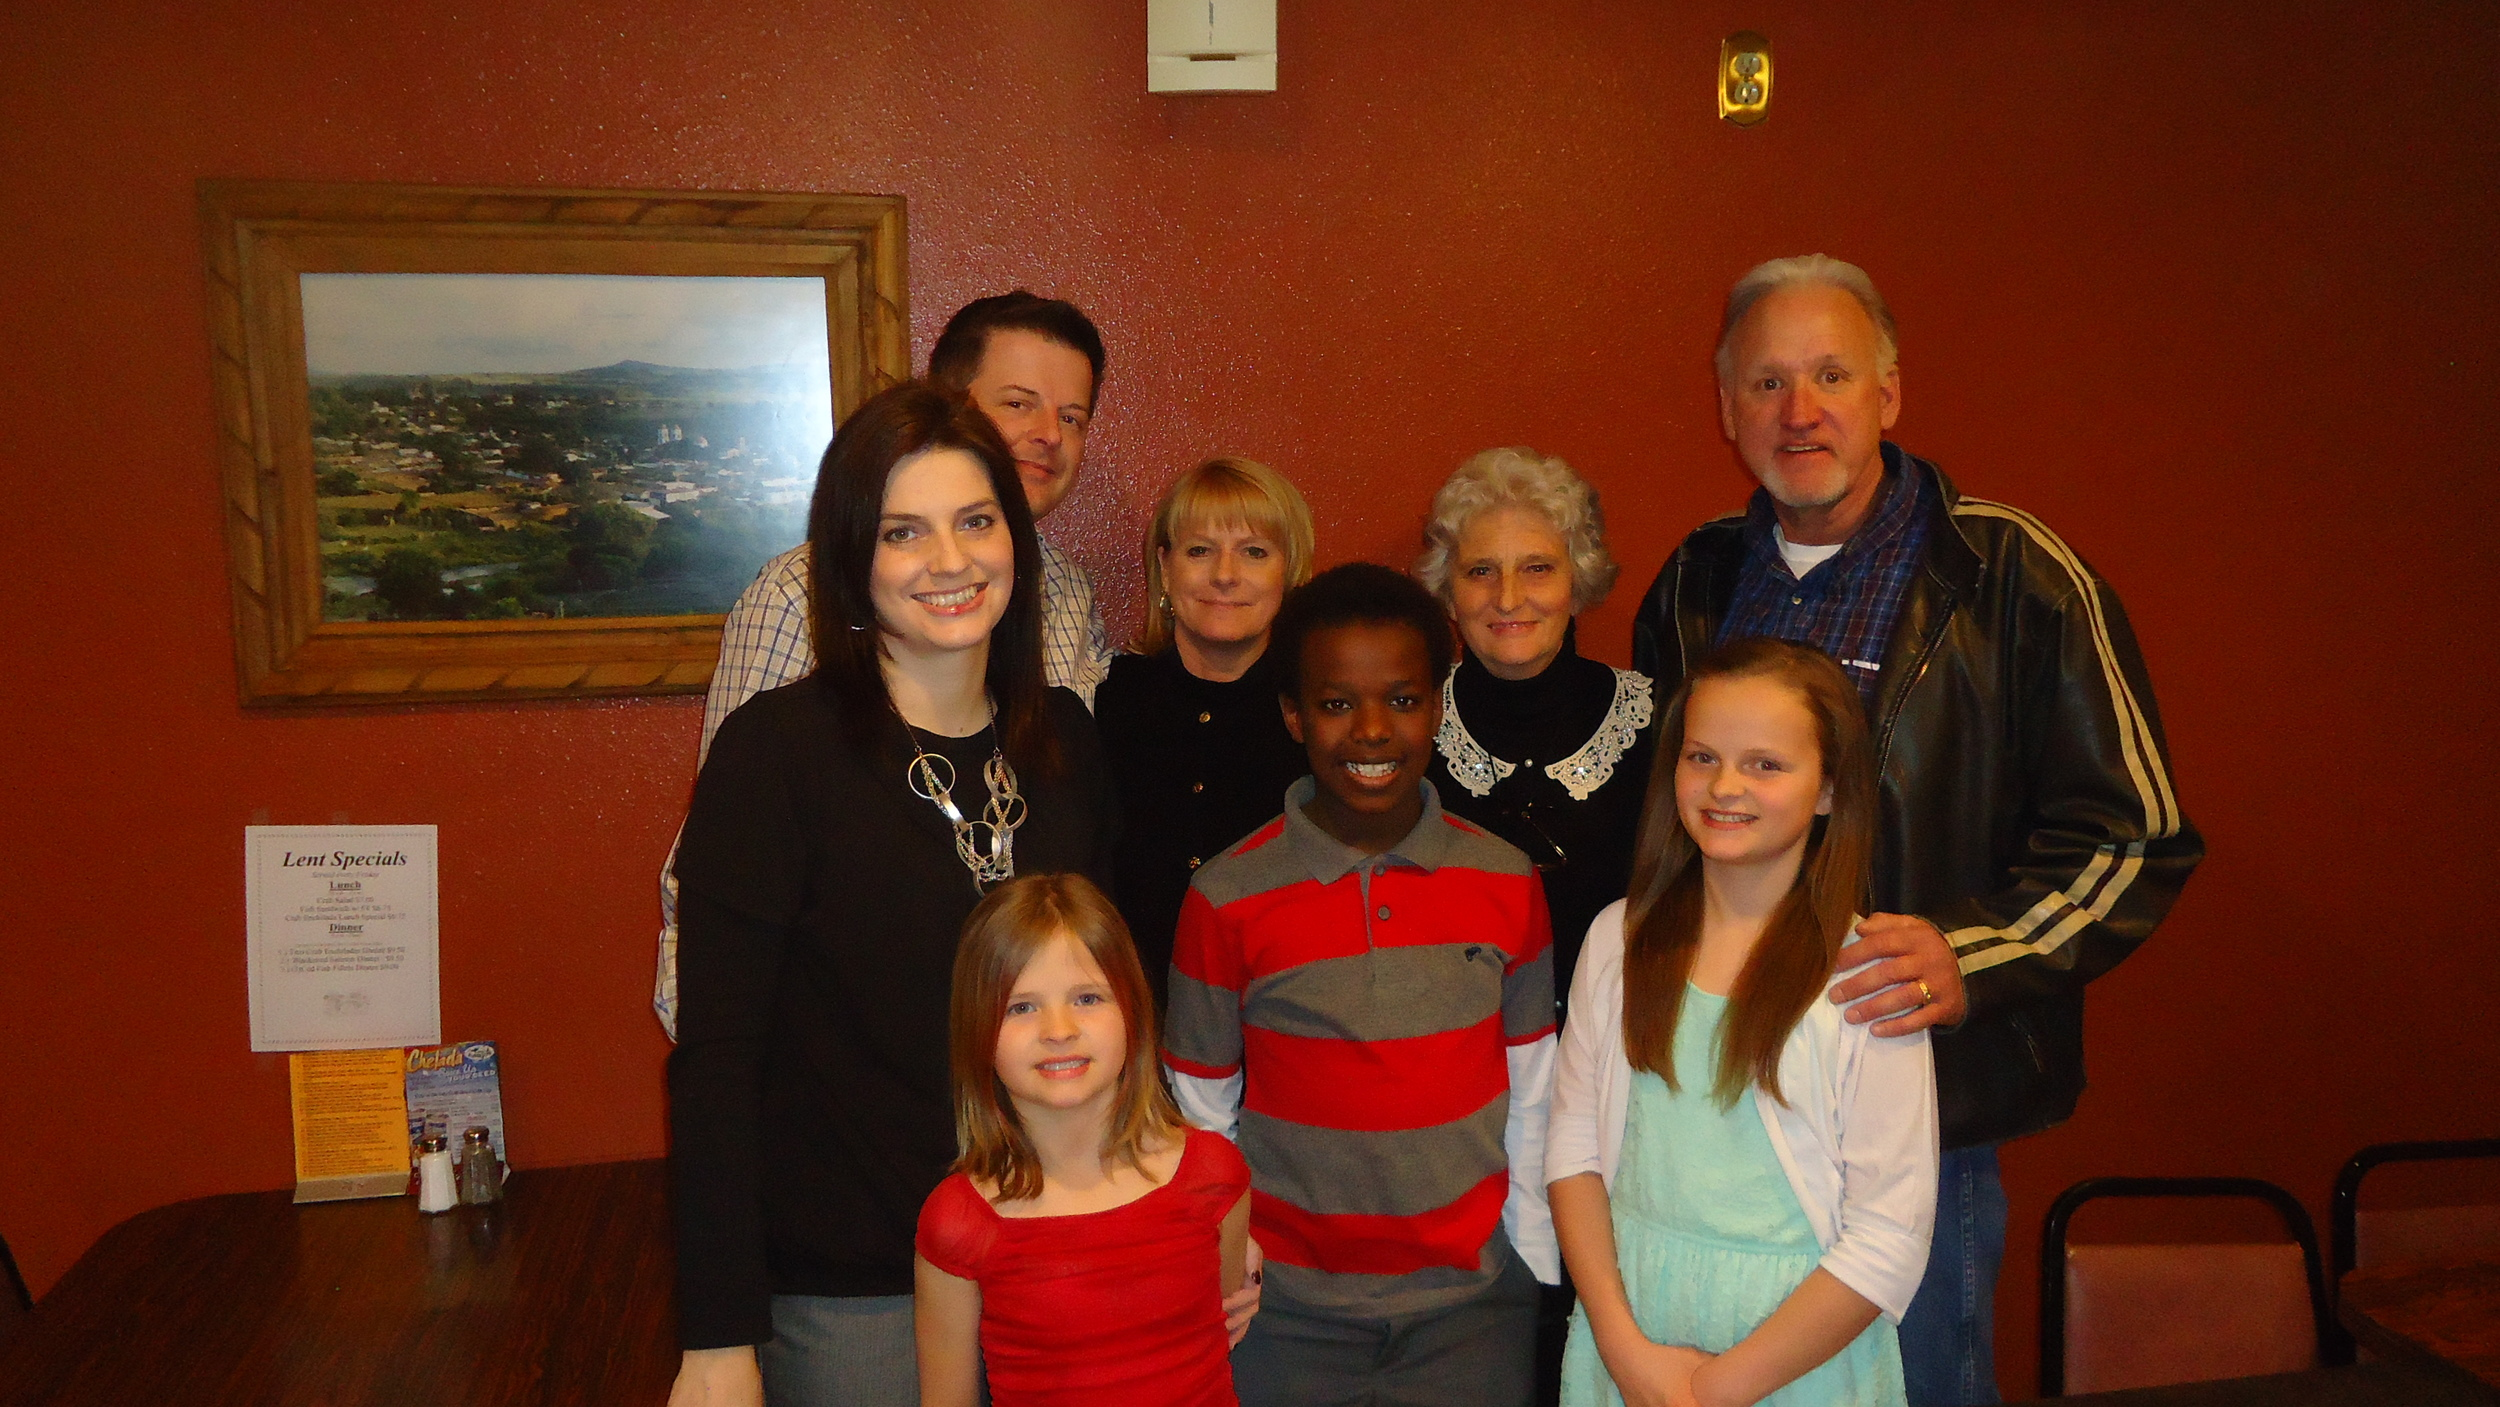 Hosts in Akron, Iowa - Lee & Nicole Harding and family